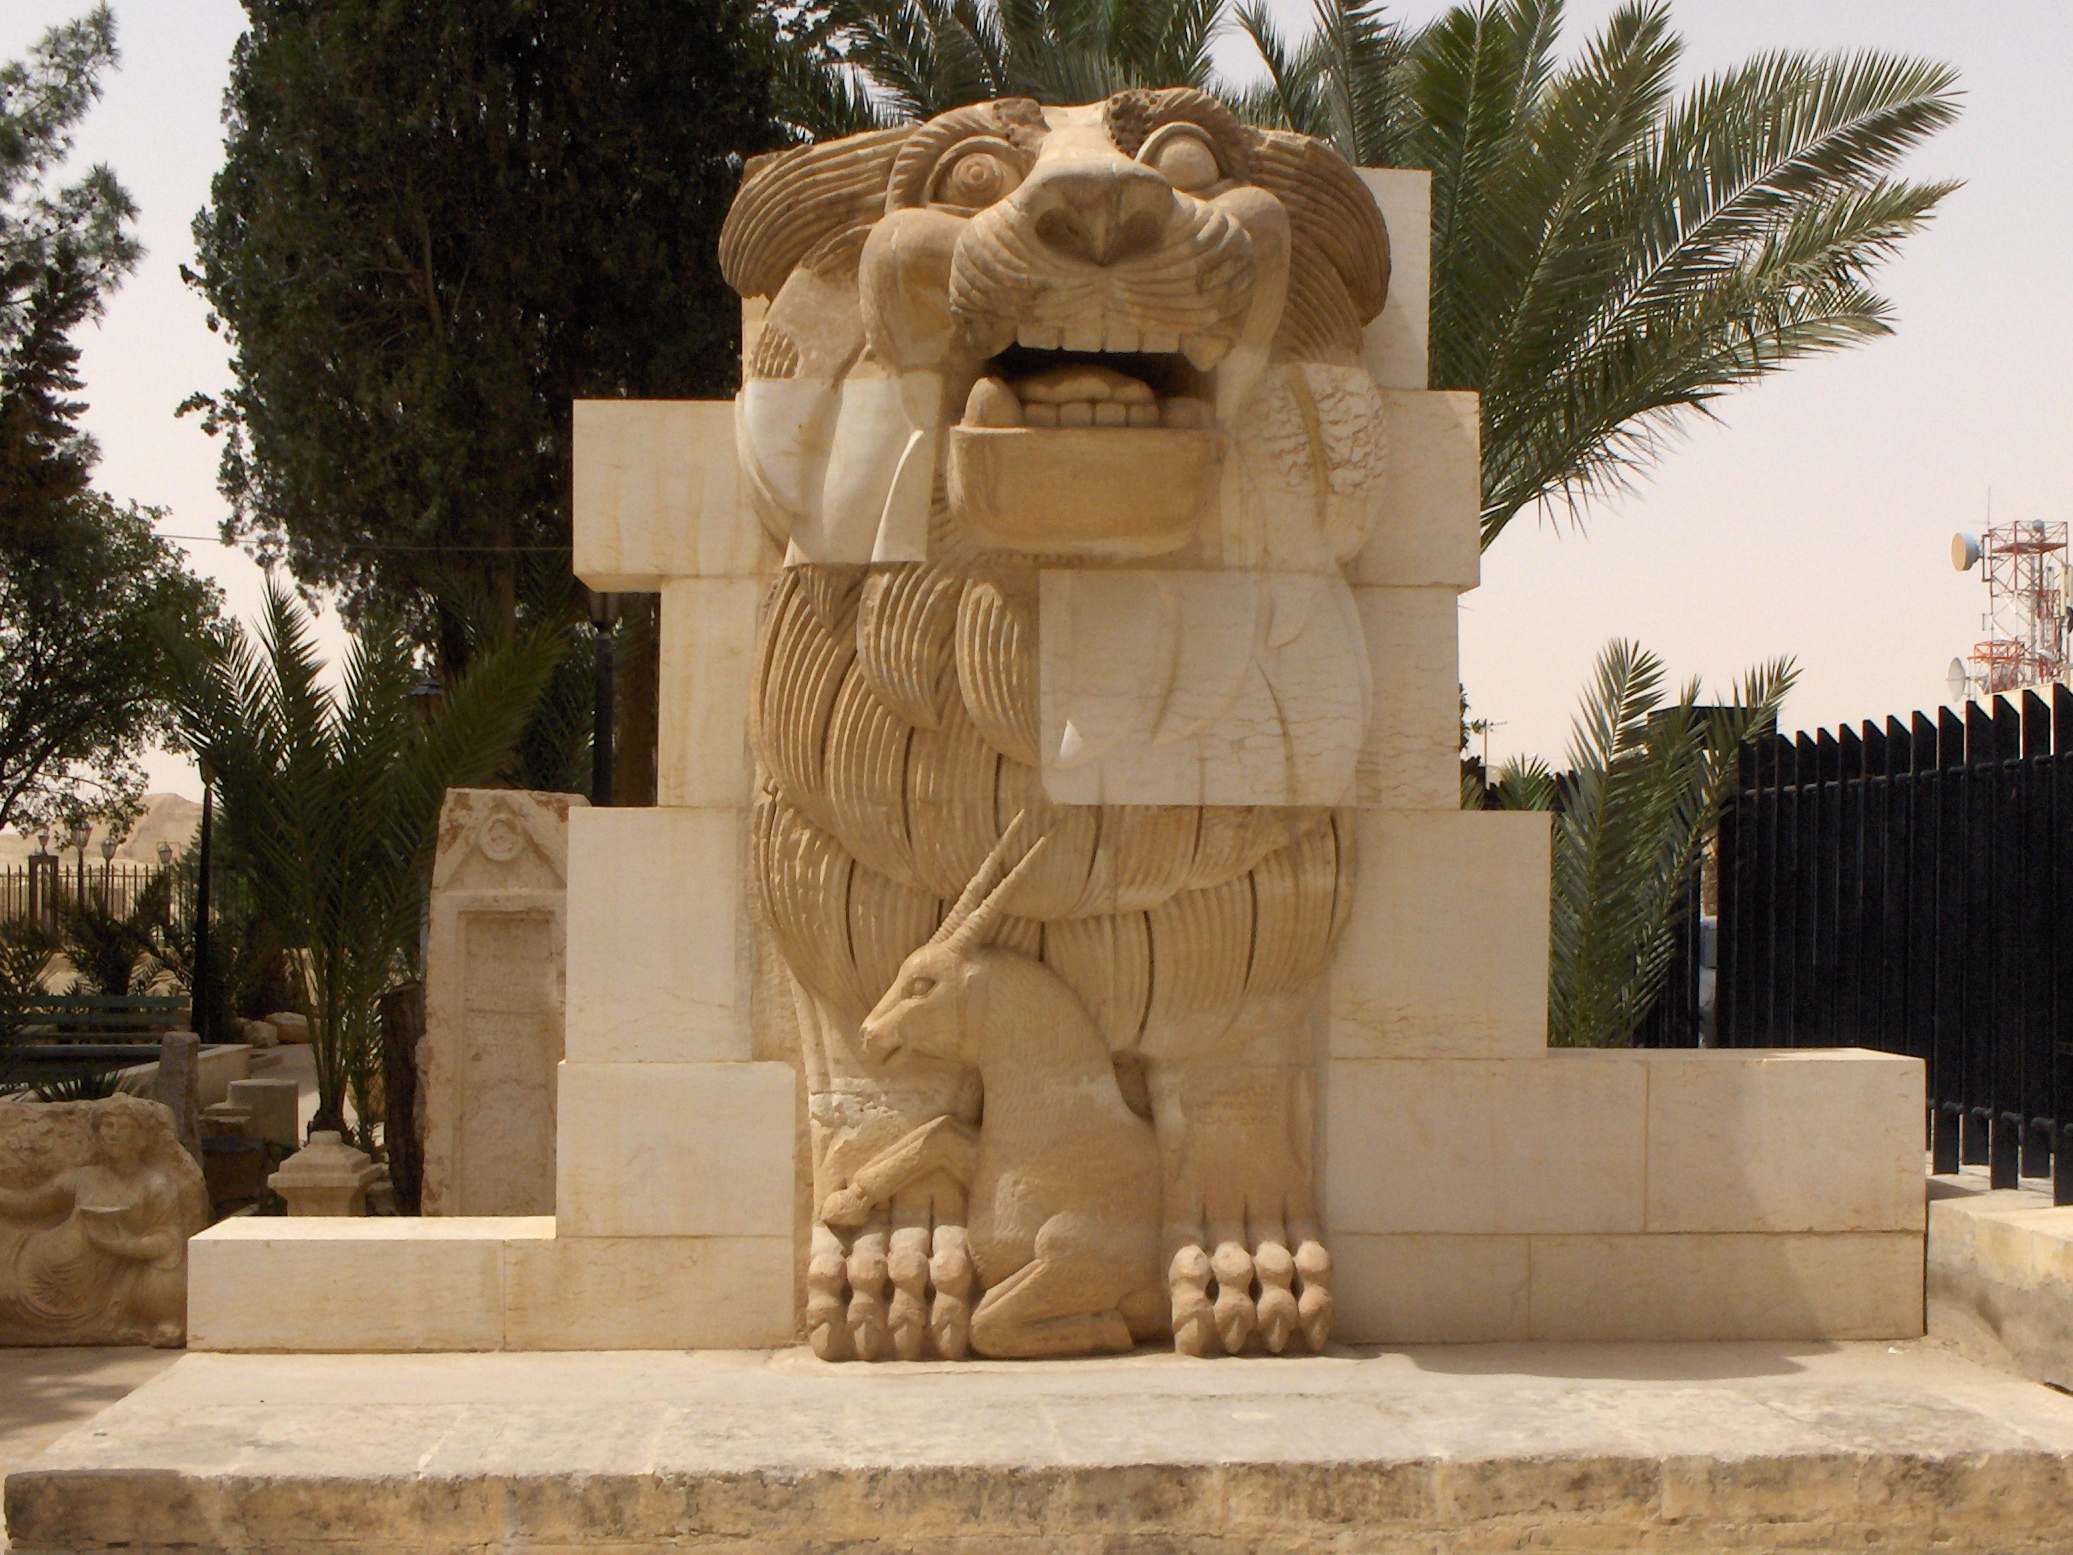 Lion of Al-Law in the museum garden. Photo by Mappo (Marco Paolo Giuliano). Public domain.